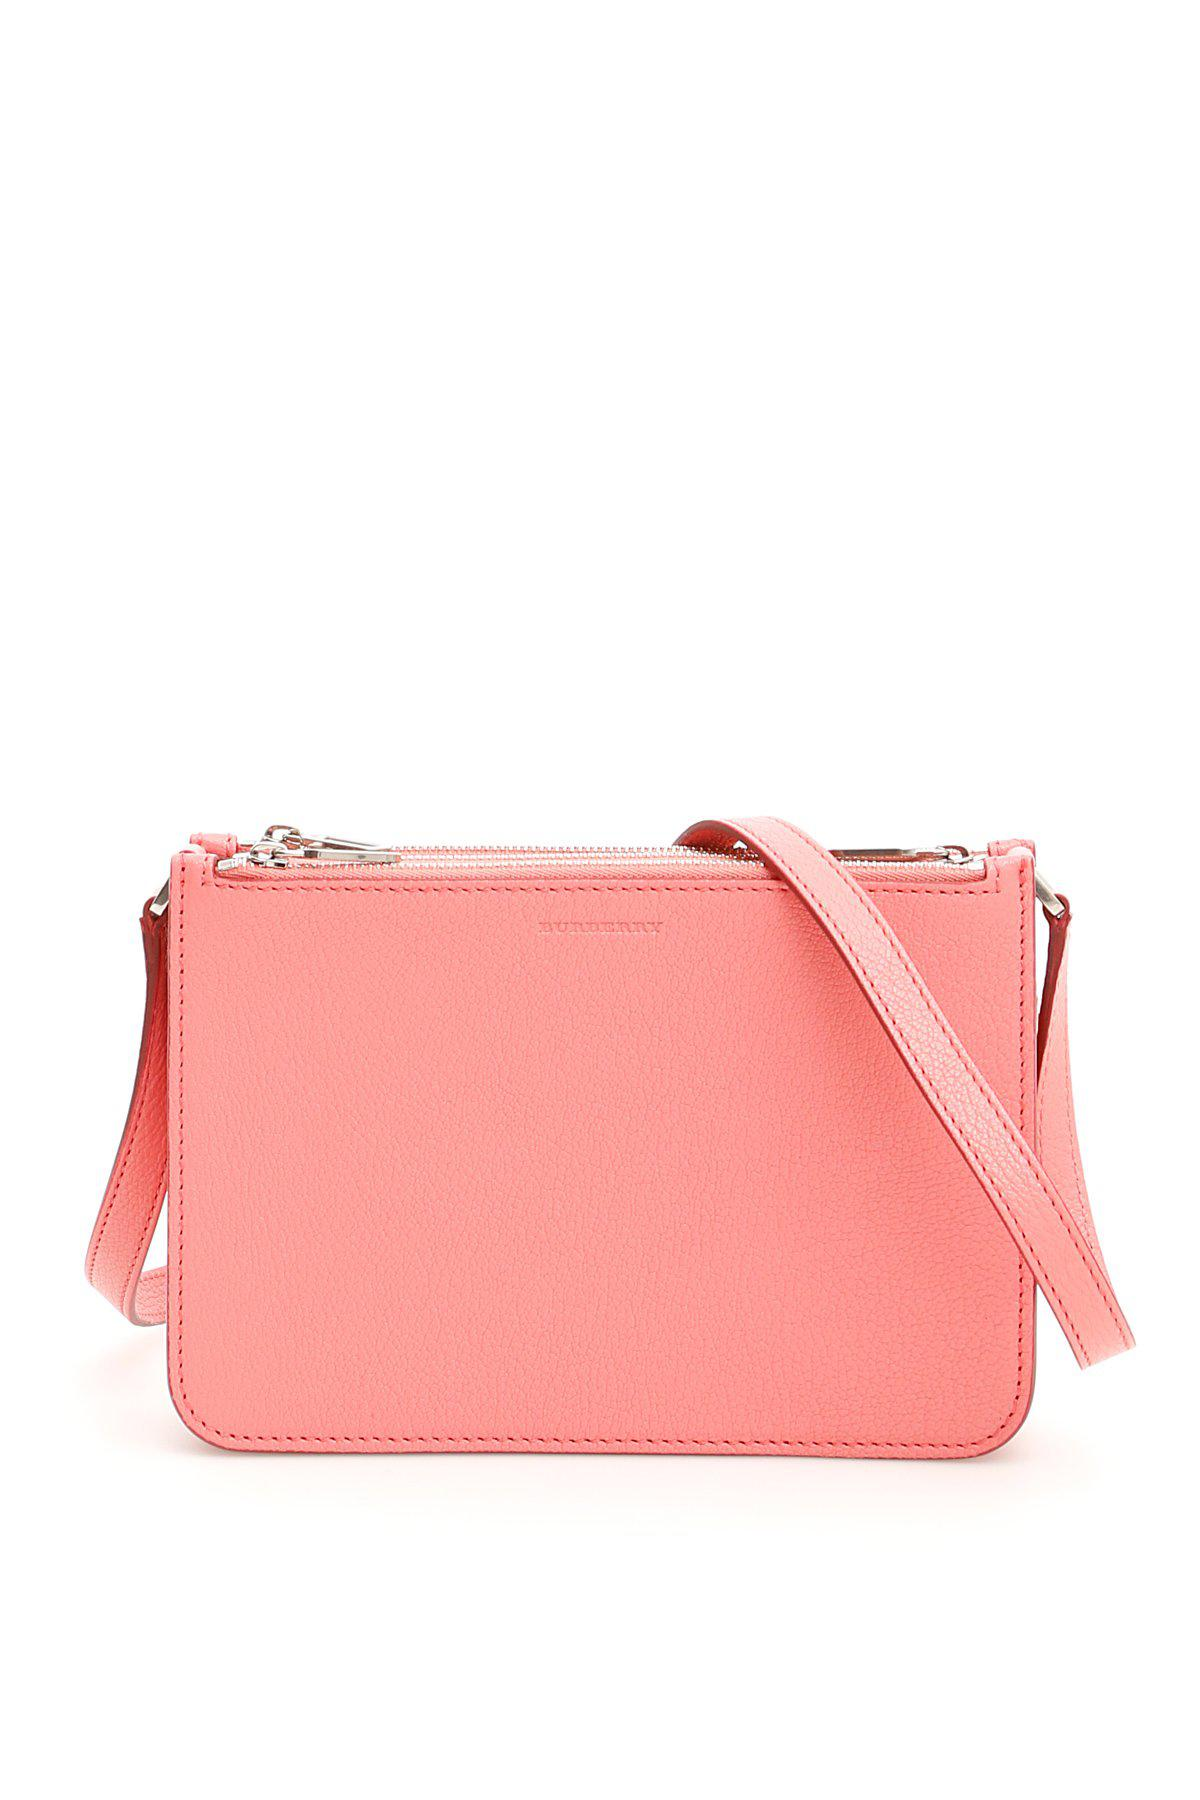 0852005ea87f Burberry Penhurst Triple Zip Bag in Pink - Lyst